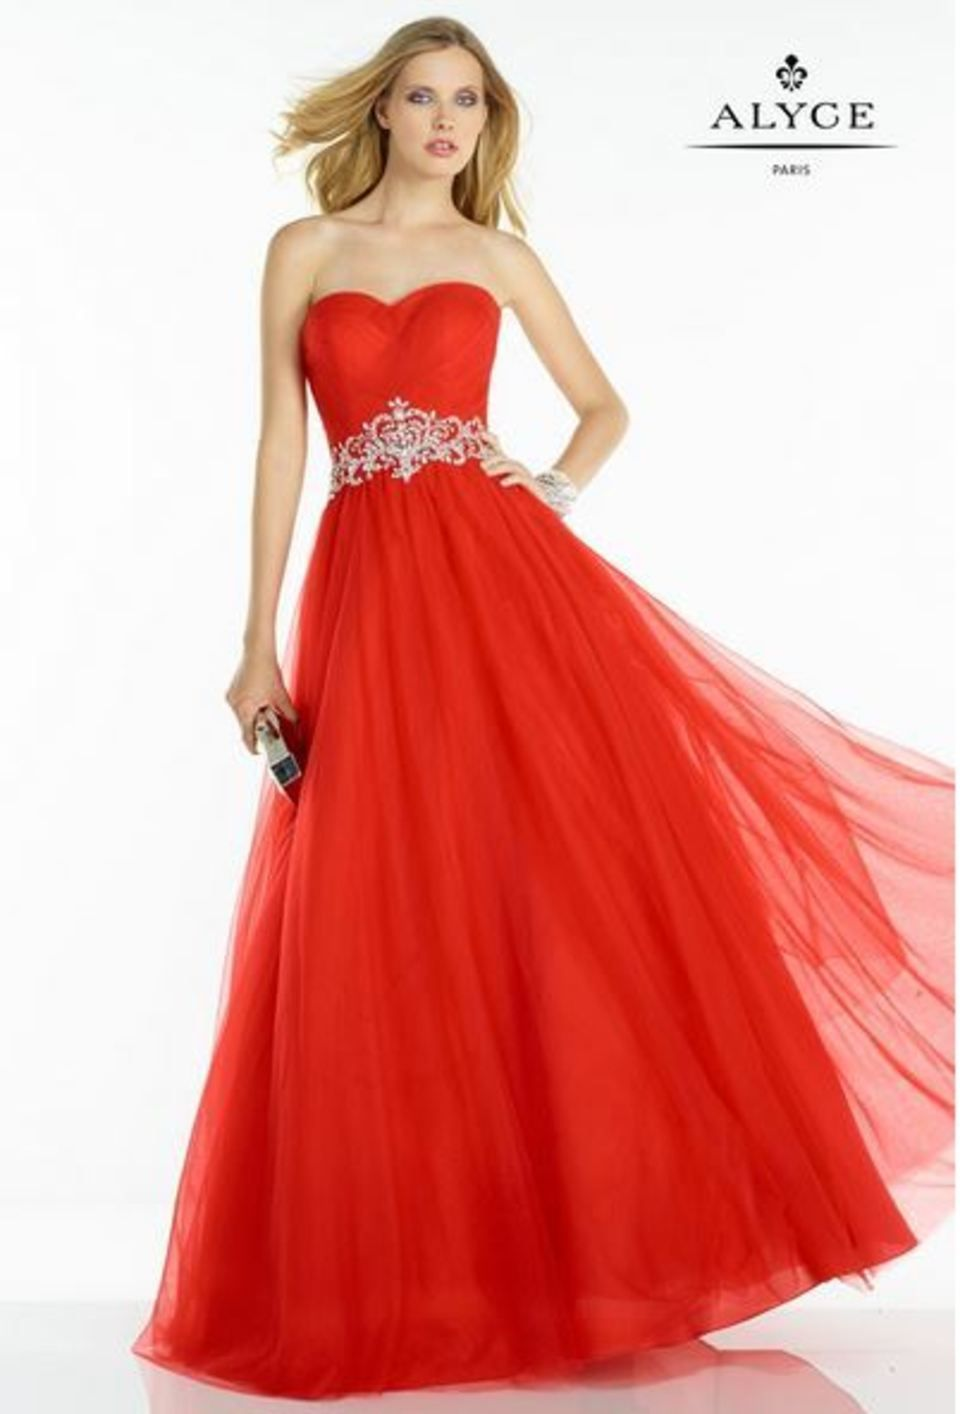 Chrissy o prom dresses xs my fashion dresses pinterest dresses